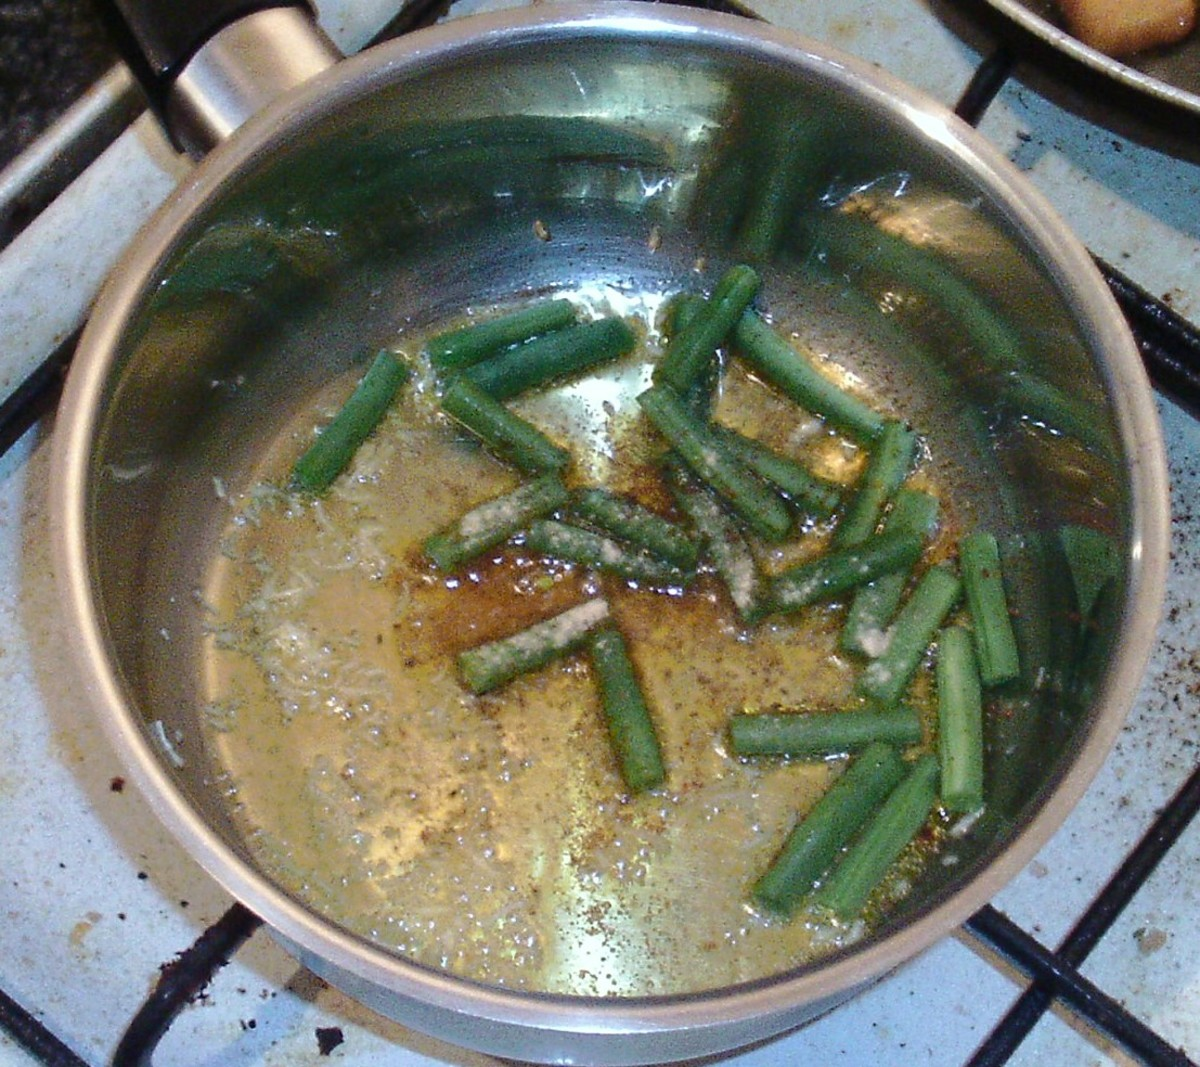 Seasoned green beans in garlic oil